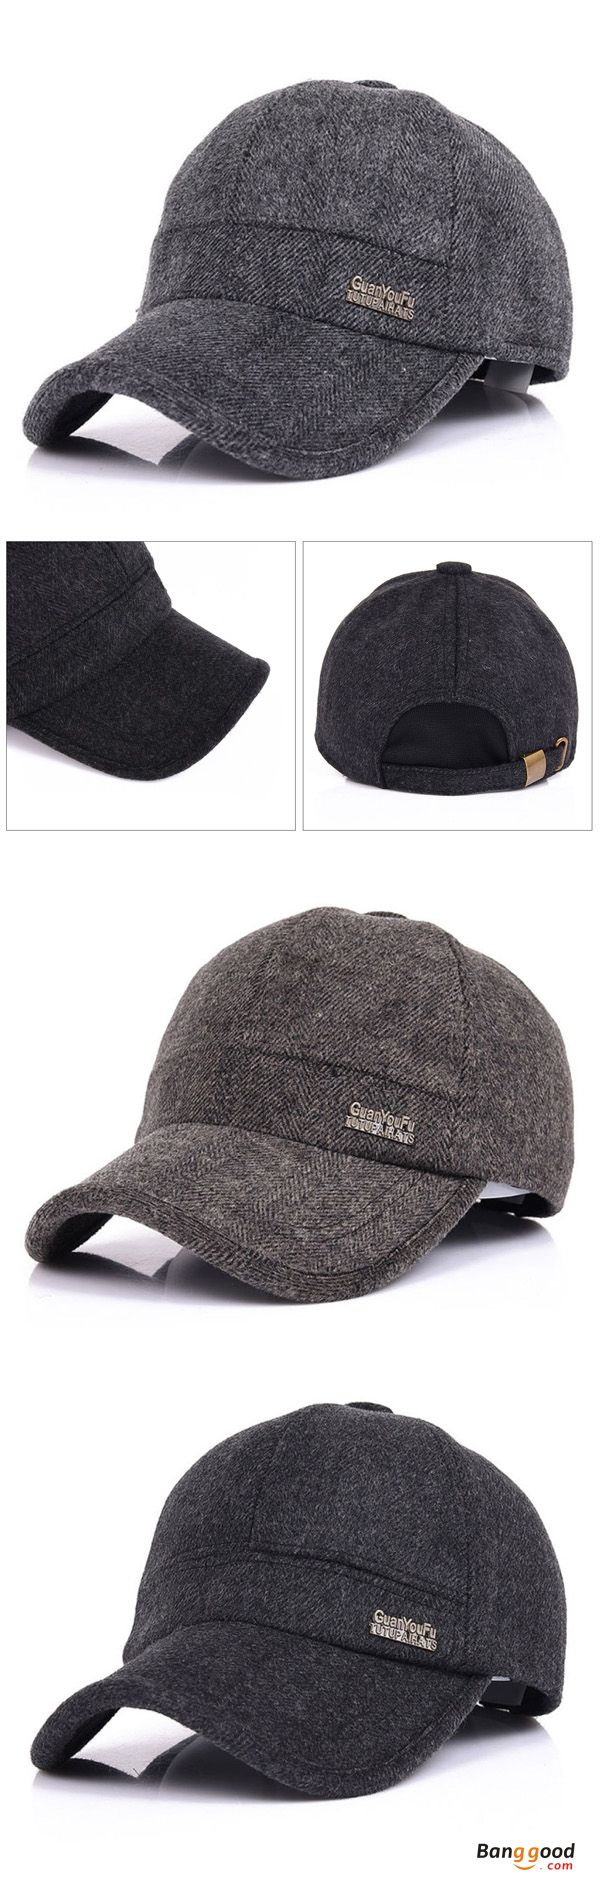 US$10.99+Free shipping. Men Caps, Baseball Hats, Snapback Caps, Adjustable, Warm, Woolen, Thicken, With Ear Flaps. Color: Black, Dark Grey, Coffee.Shop now~